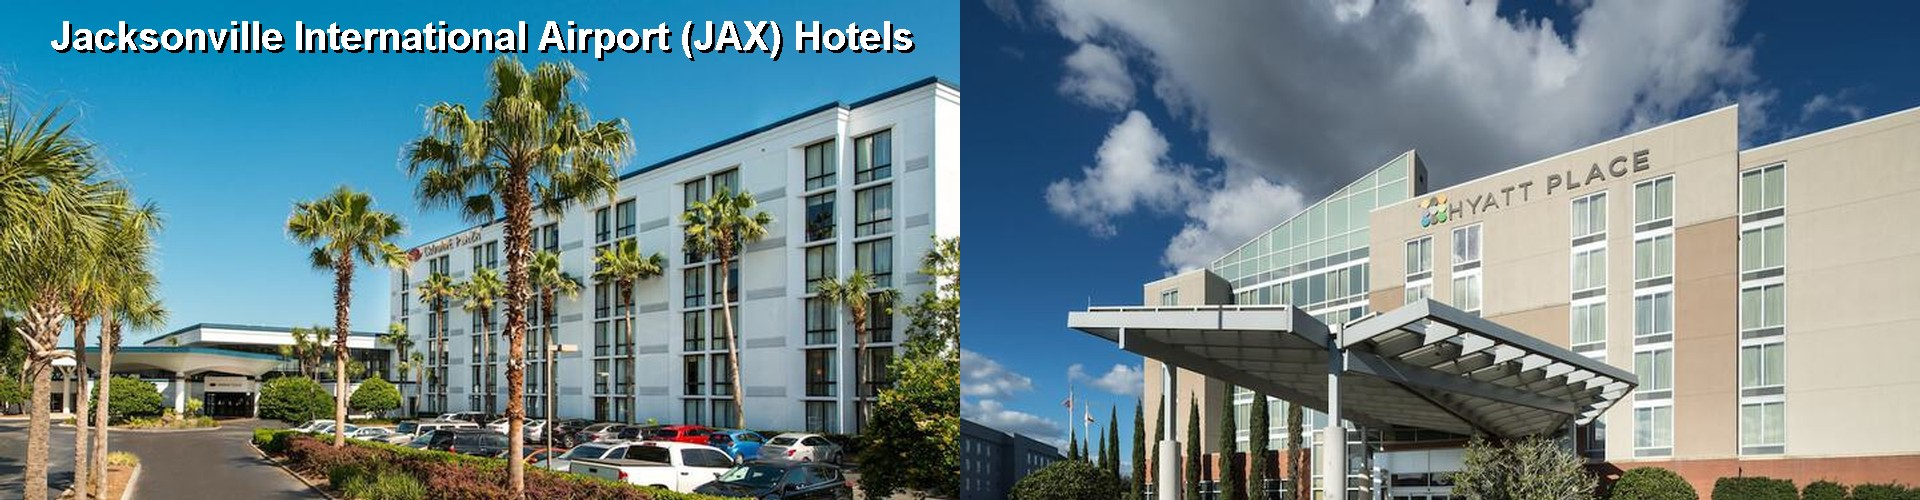 5 Best Hotels Near Jacksonville International Airport Jax